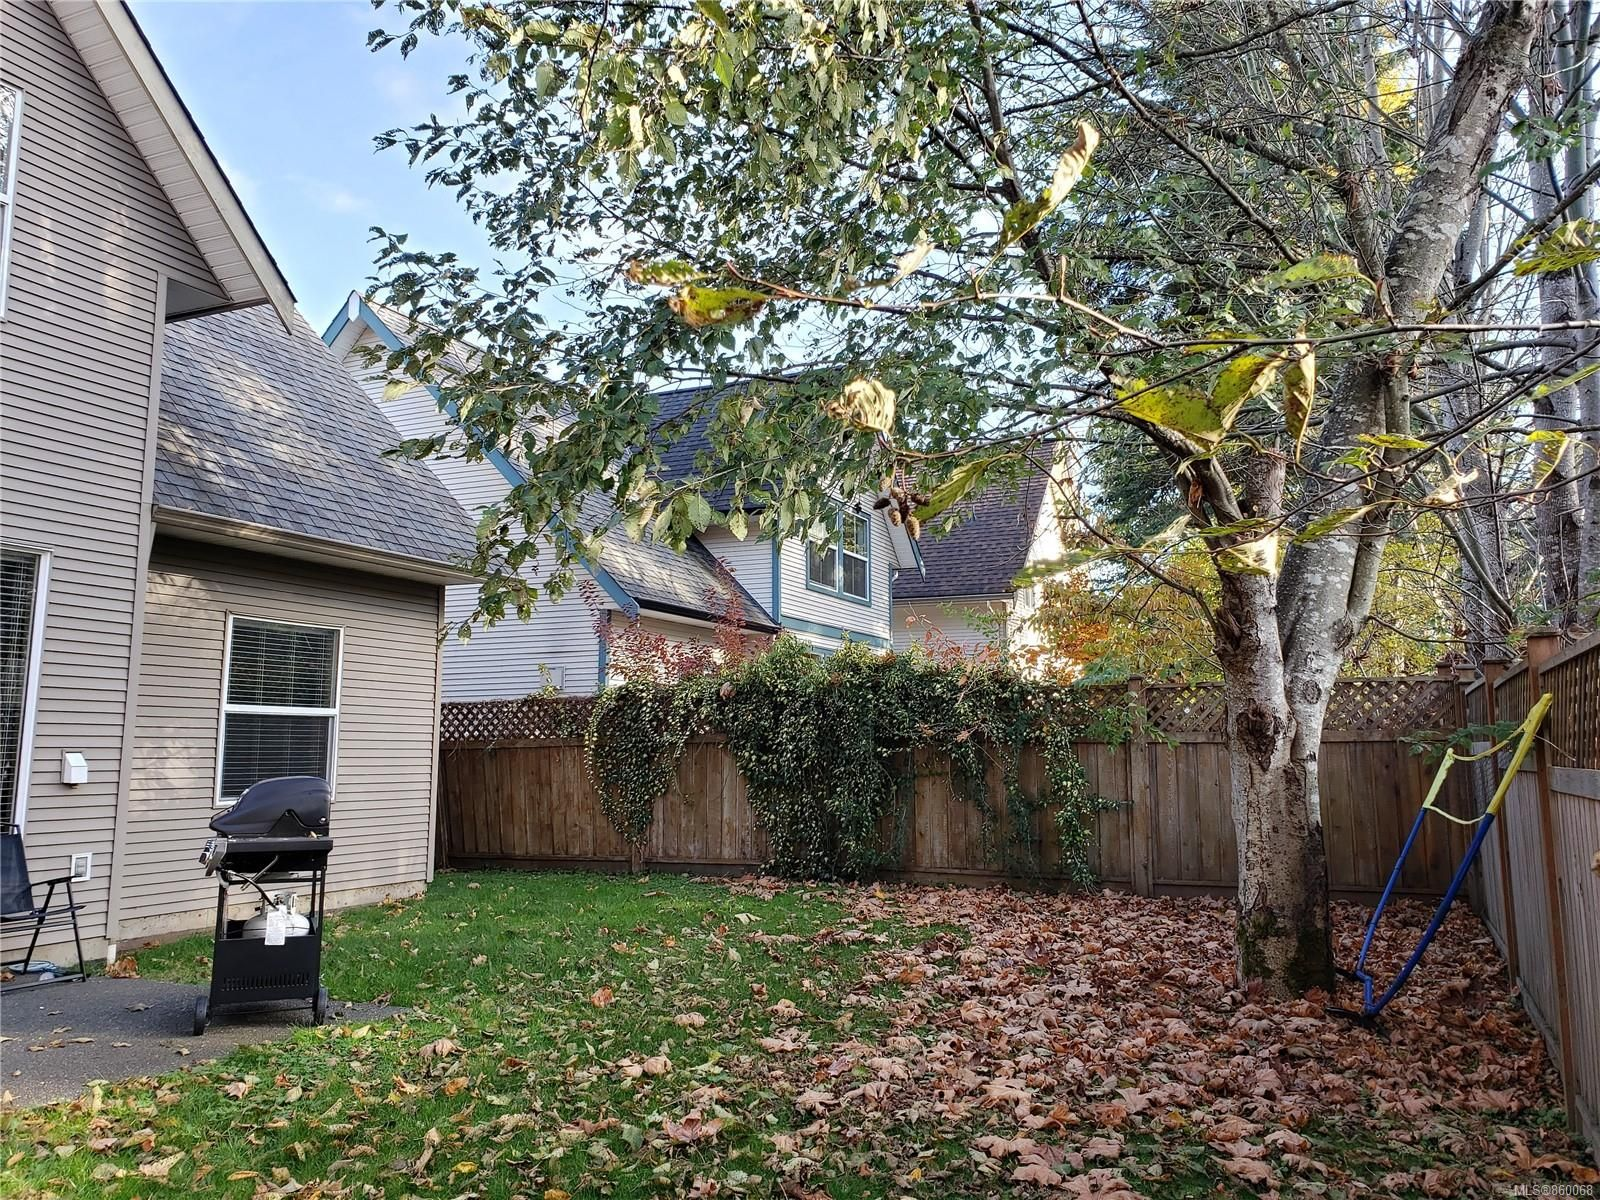 Photo 3: Photos: 105 2787 1st St in Courtenay: CV Courtenay City House for sale (Comox Valley)  : MLS®# 860068